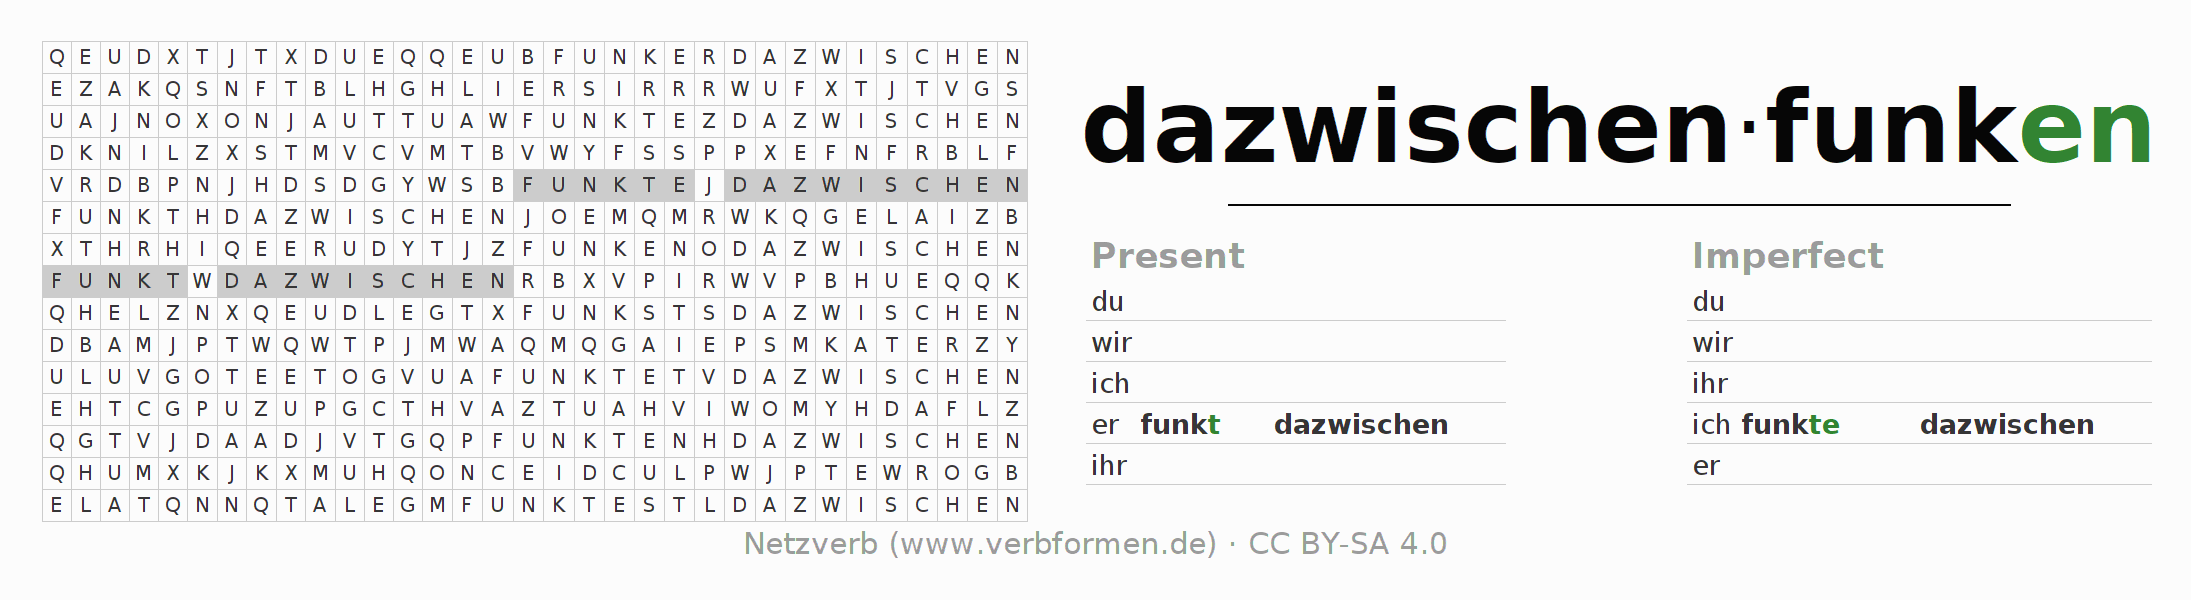 Word search puzzle for the conjugation of the verb dazwischenfunken